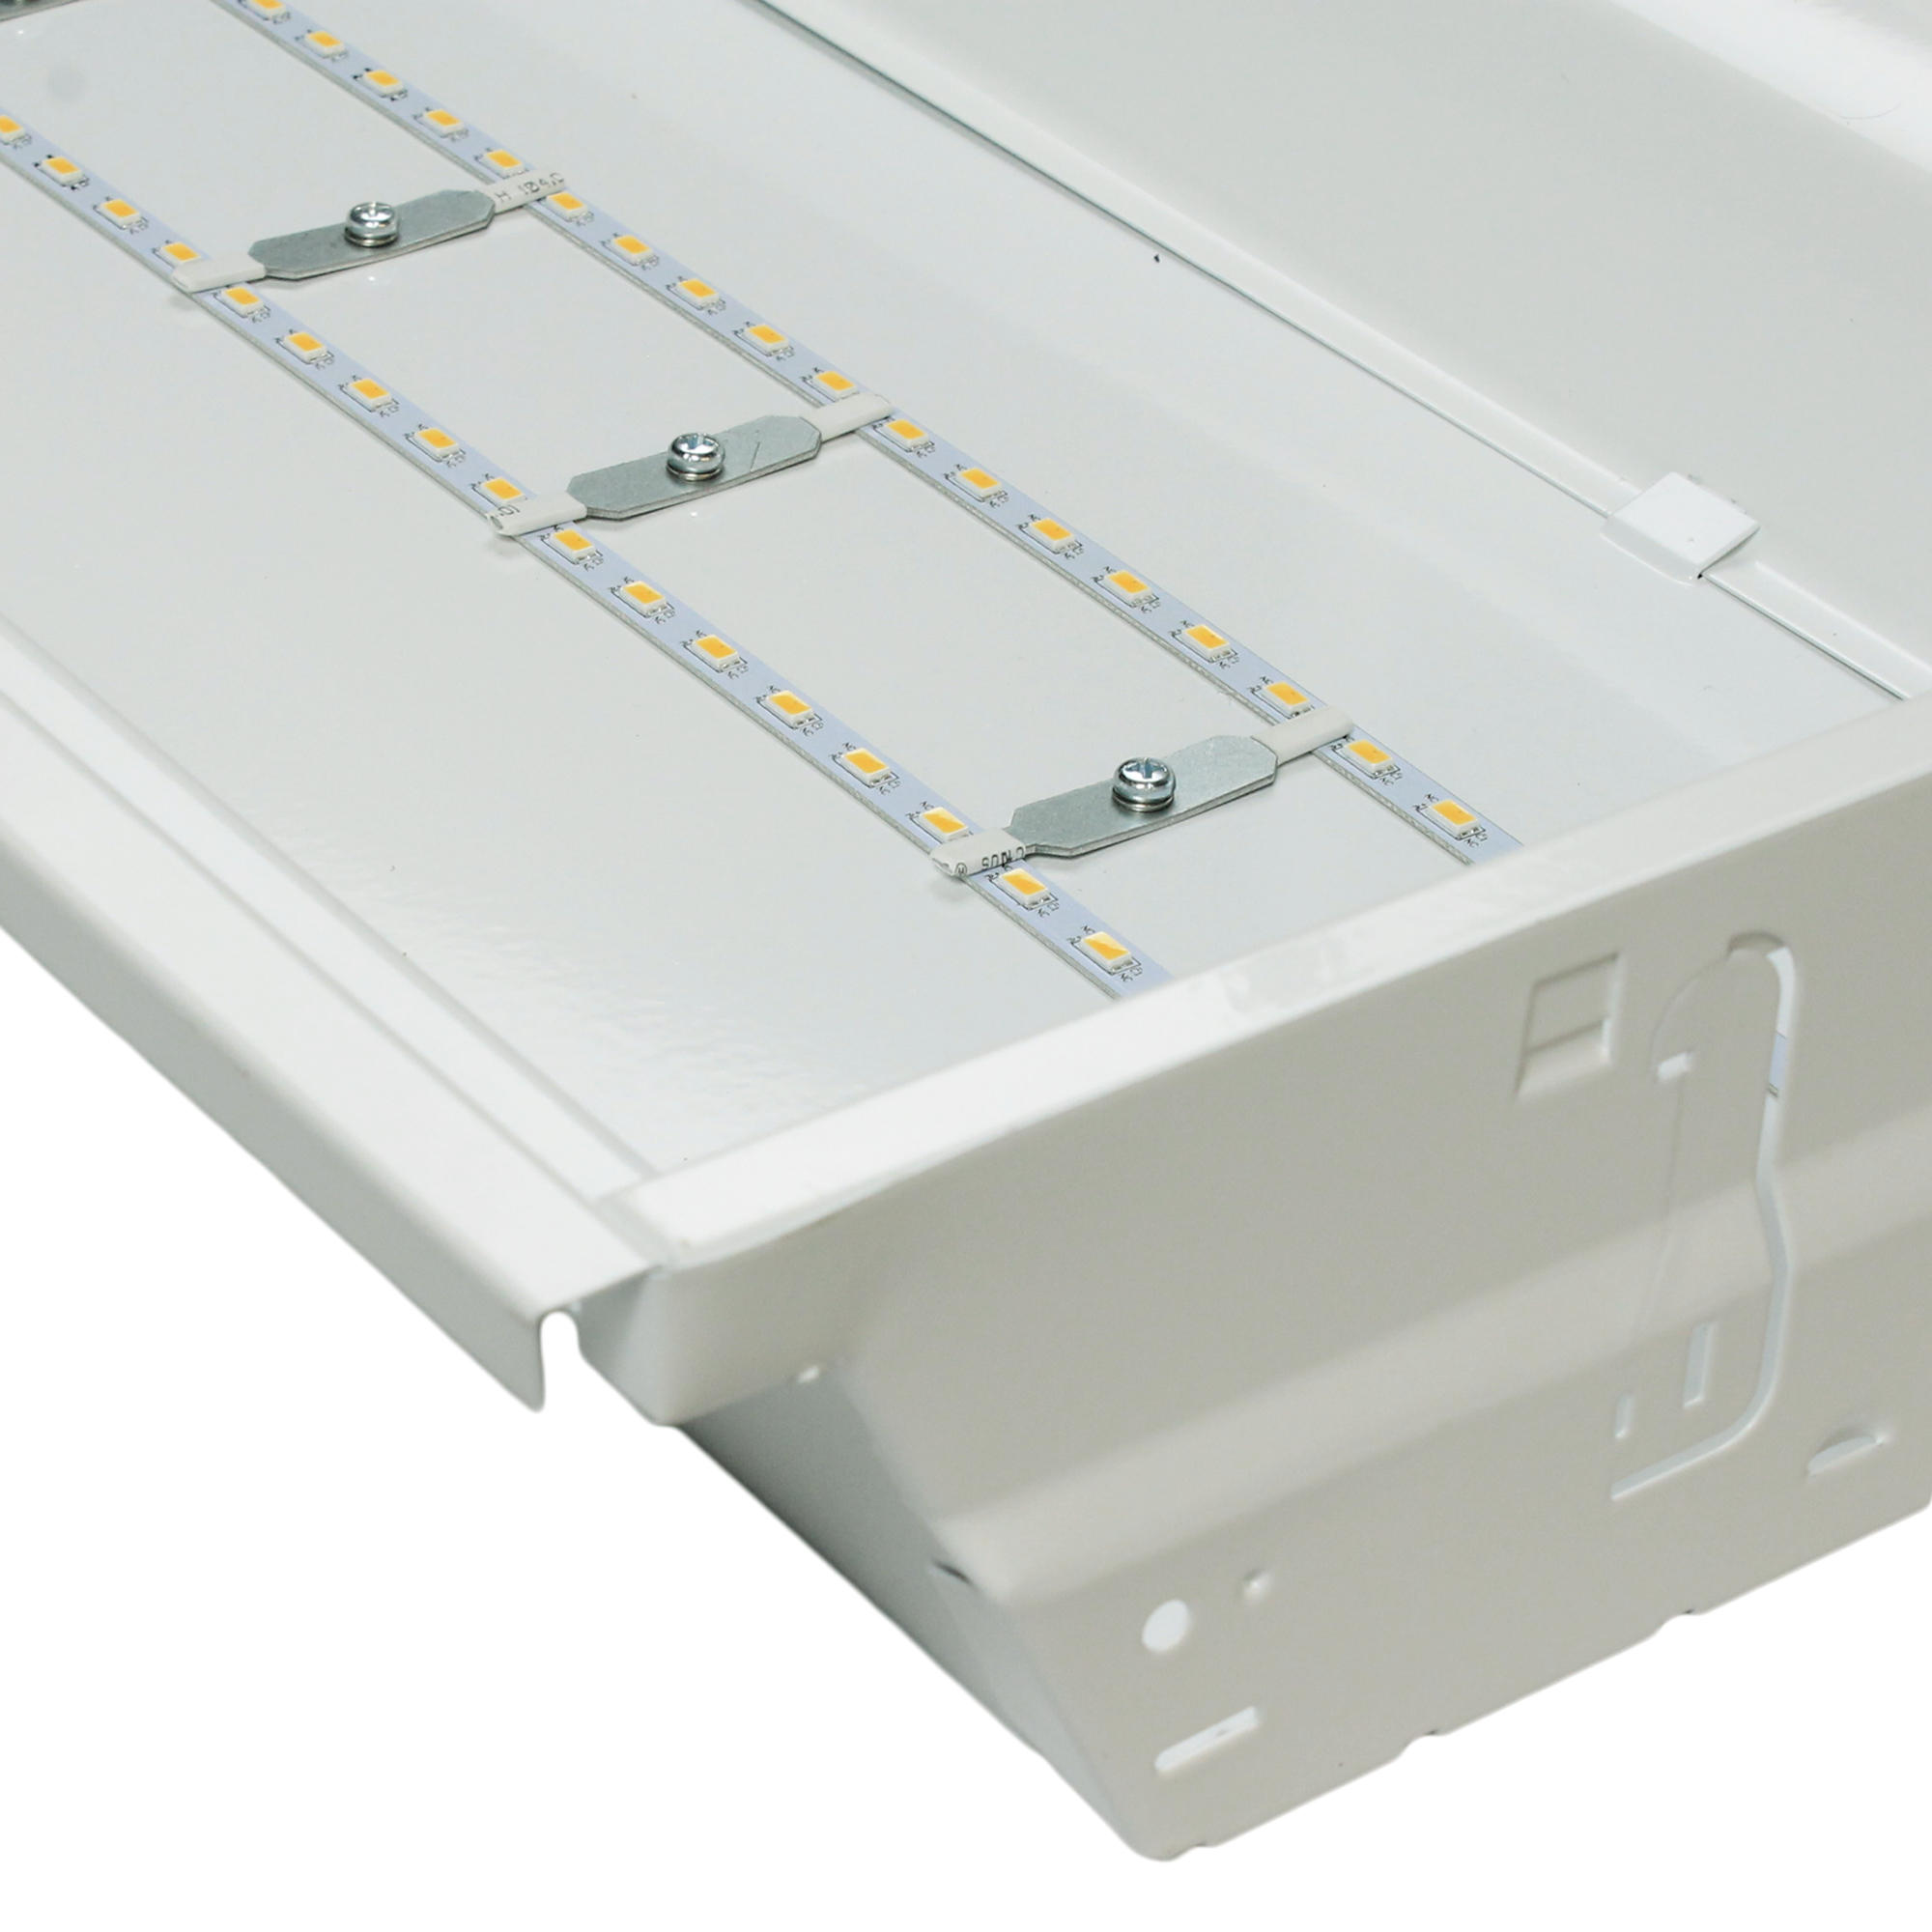 Environmentallights Com Adds Maxlite Led Ceiling Panels